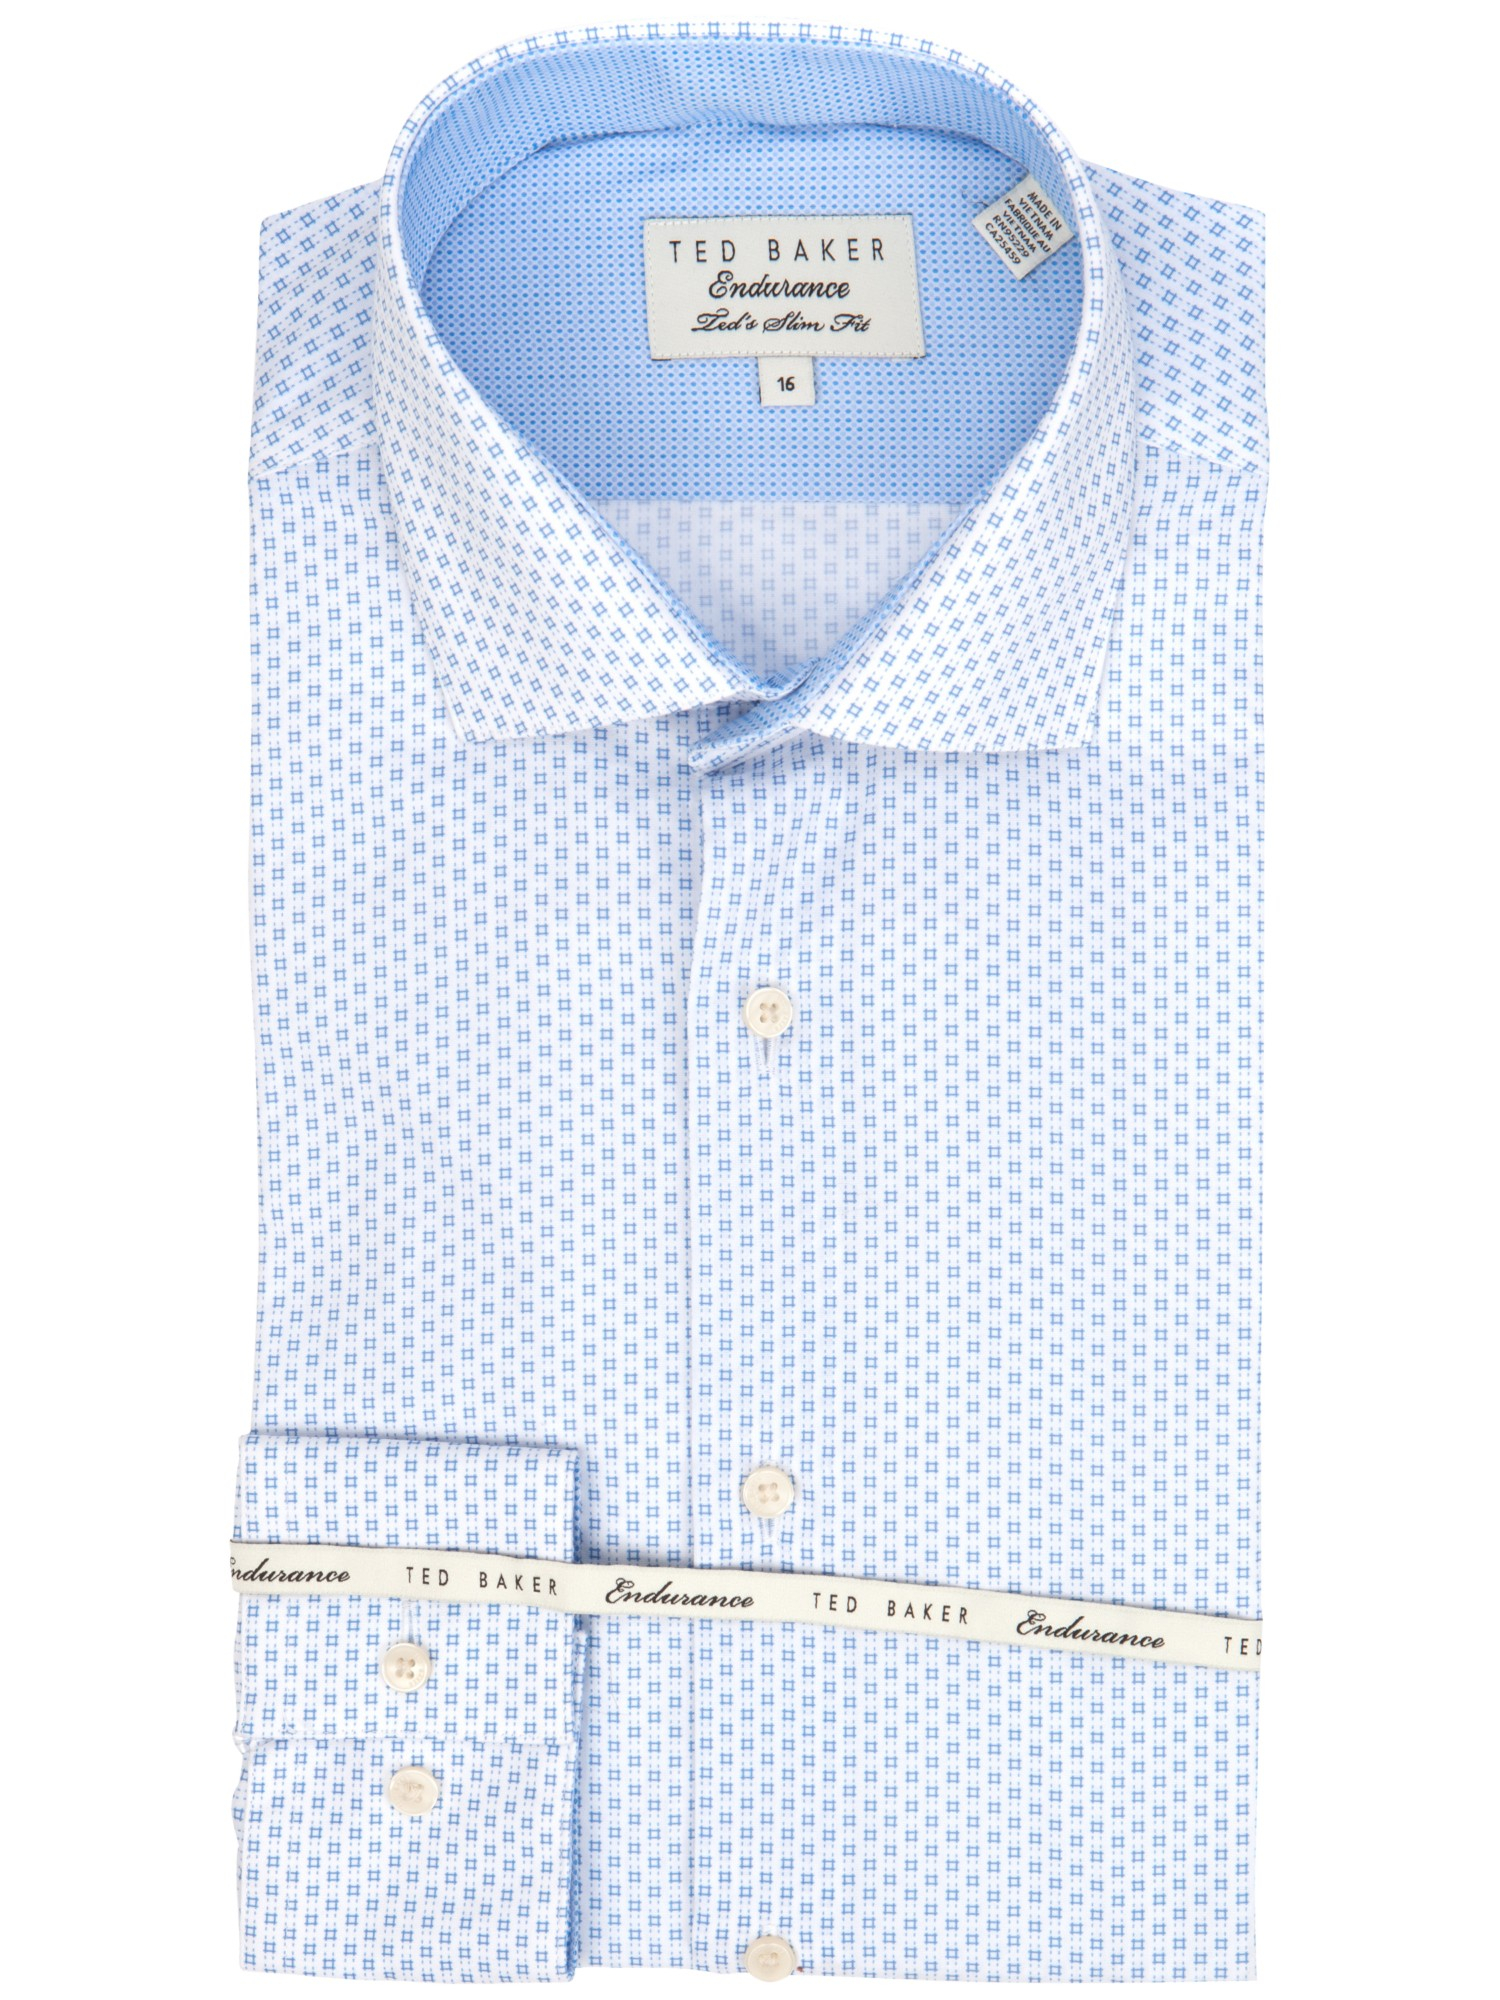 19a31128f5889 Ted Baker Endurance Slick Rick Geo Square Print Shirt in Blue for ...